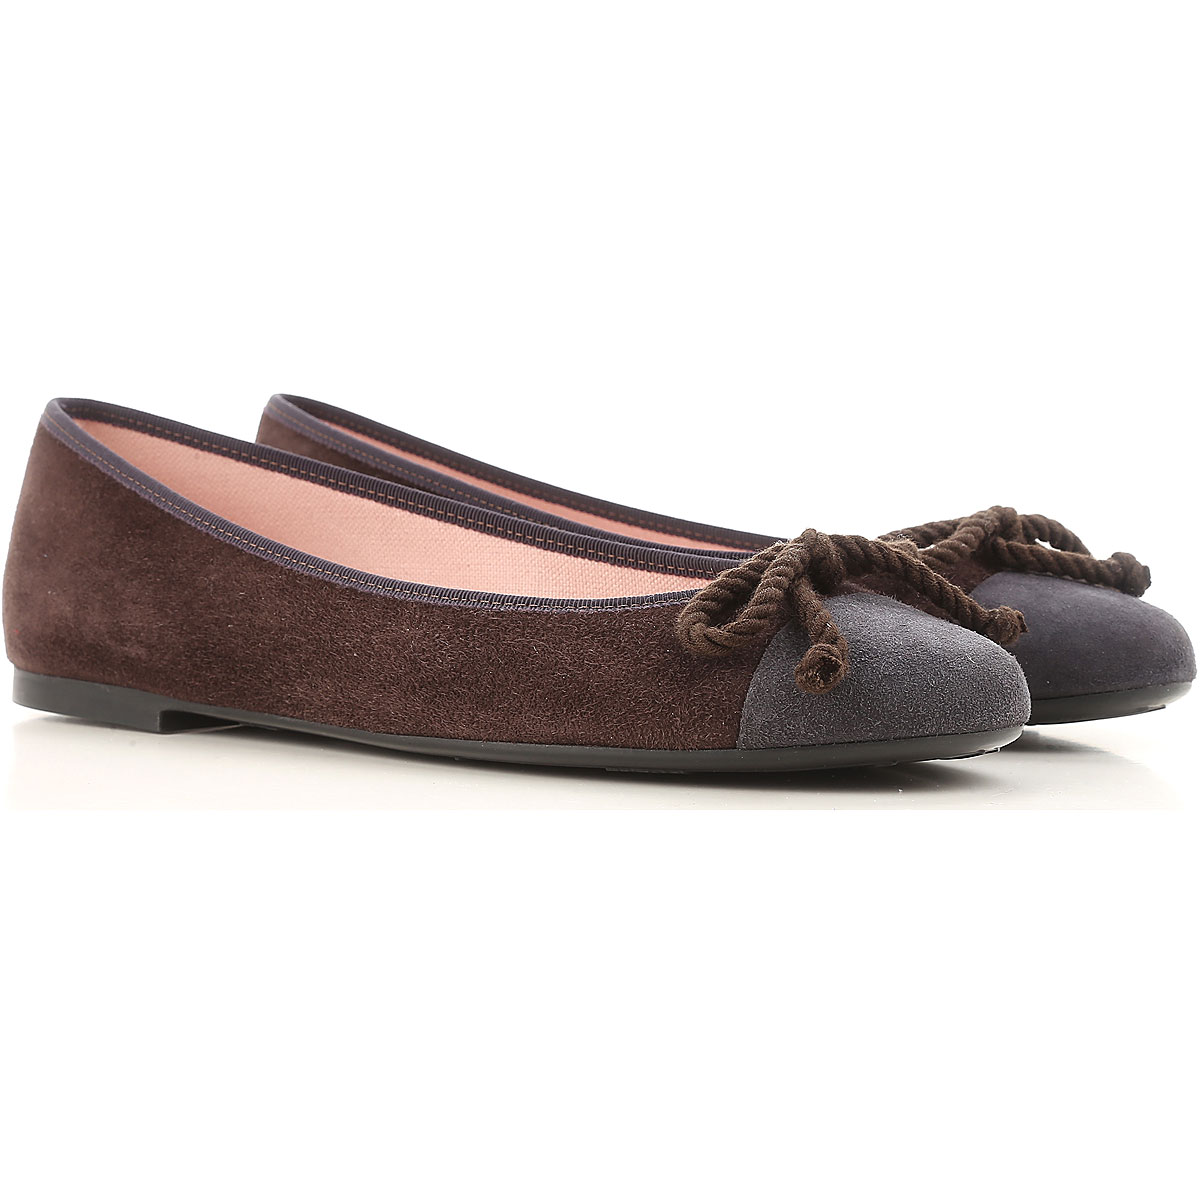 Image of Pretty Ballerinas Ballet Flats Ballerina Shoes for Women On Sale in Outlet, Brown, Suede leather, 2017, 10 6